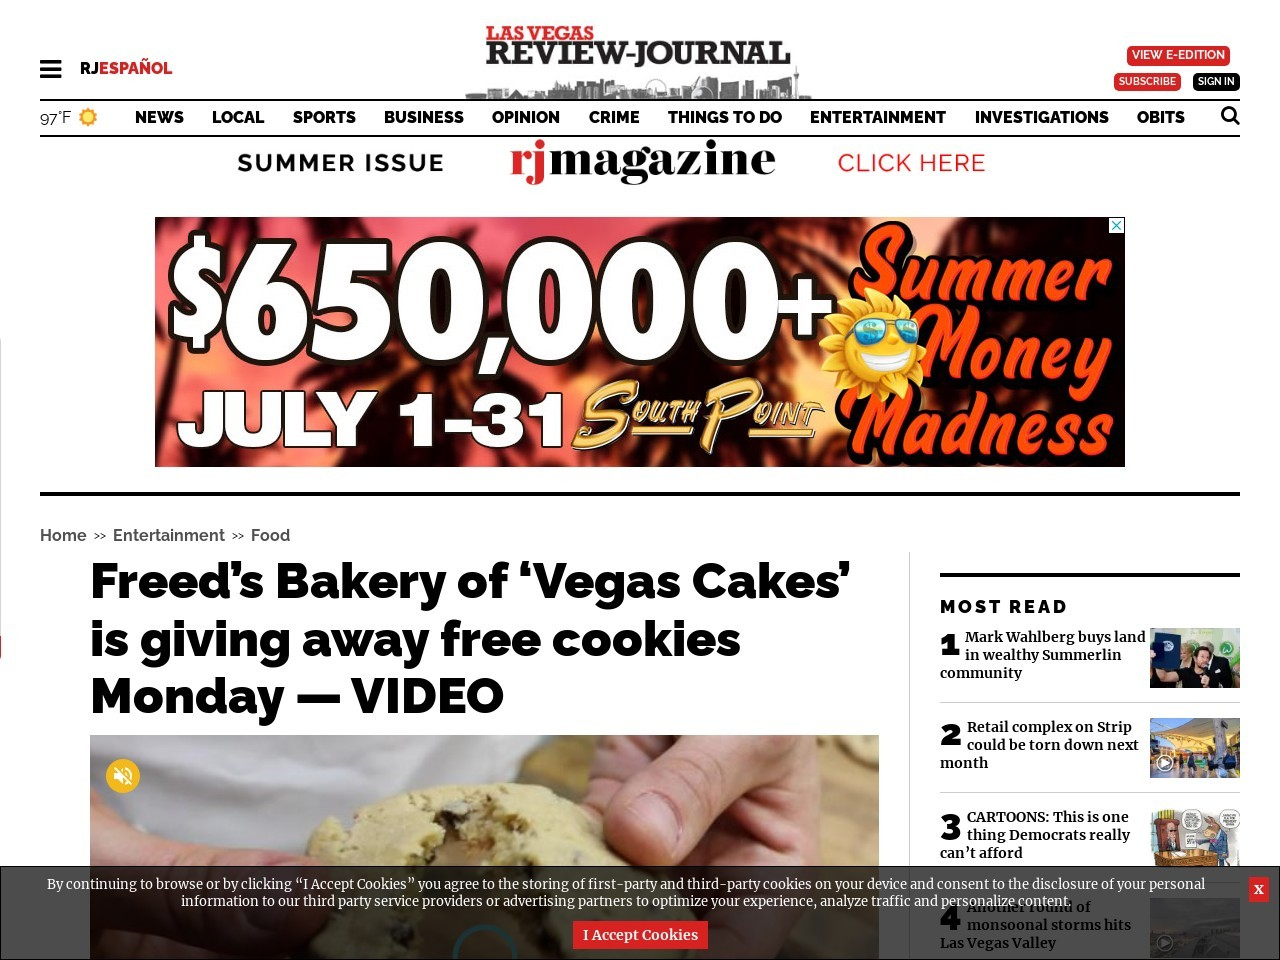 Freed's Bakery of 'Vegas Cakes' is giving away free cookies Monday — VIDEO